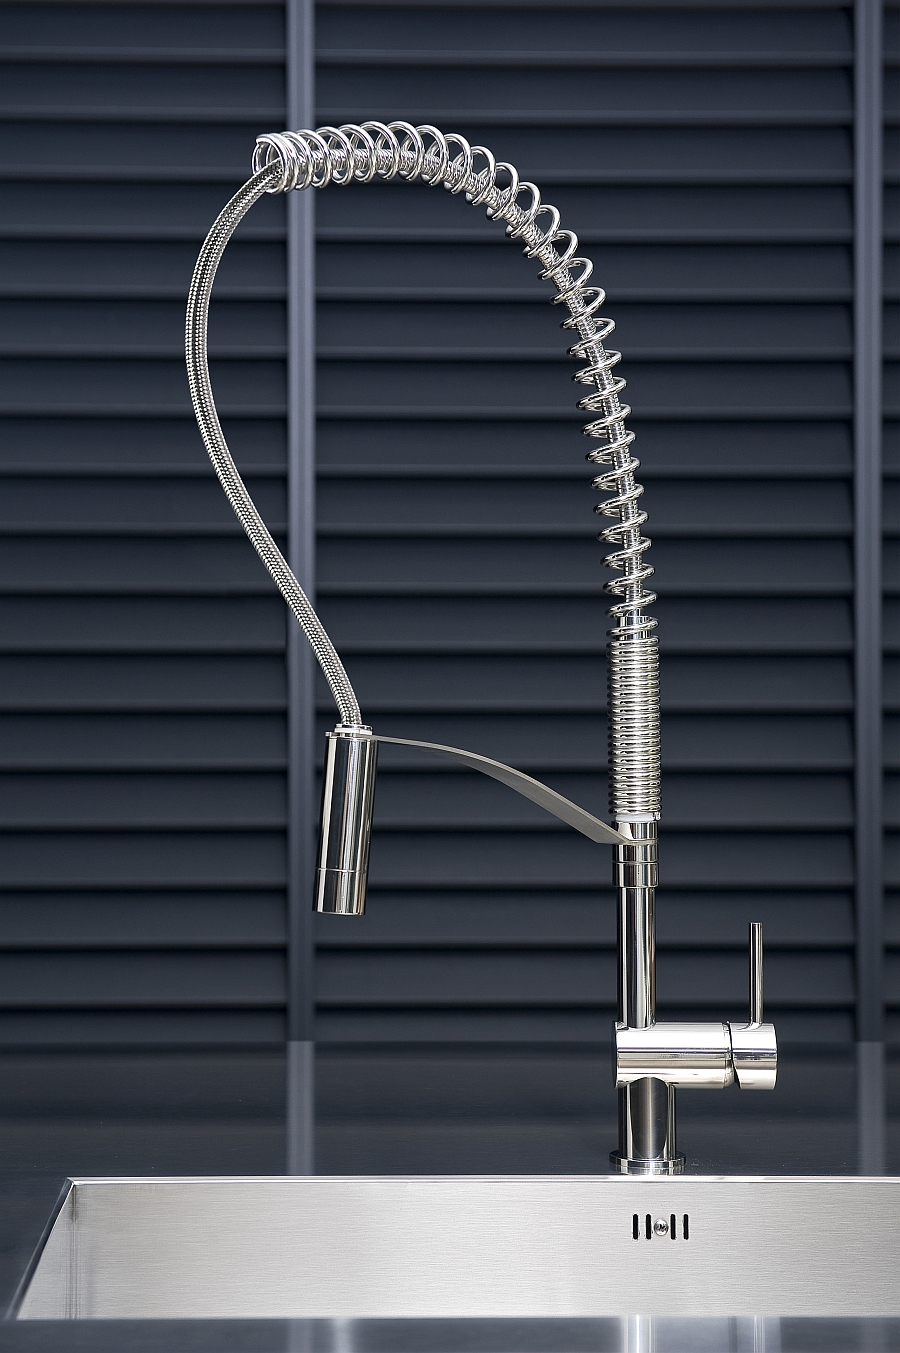 The indomitable and bold design of the Vela L kitchen faucet